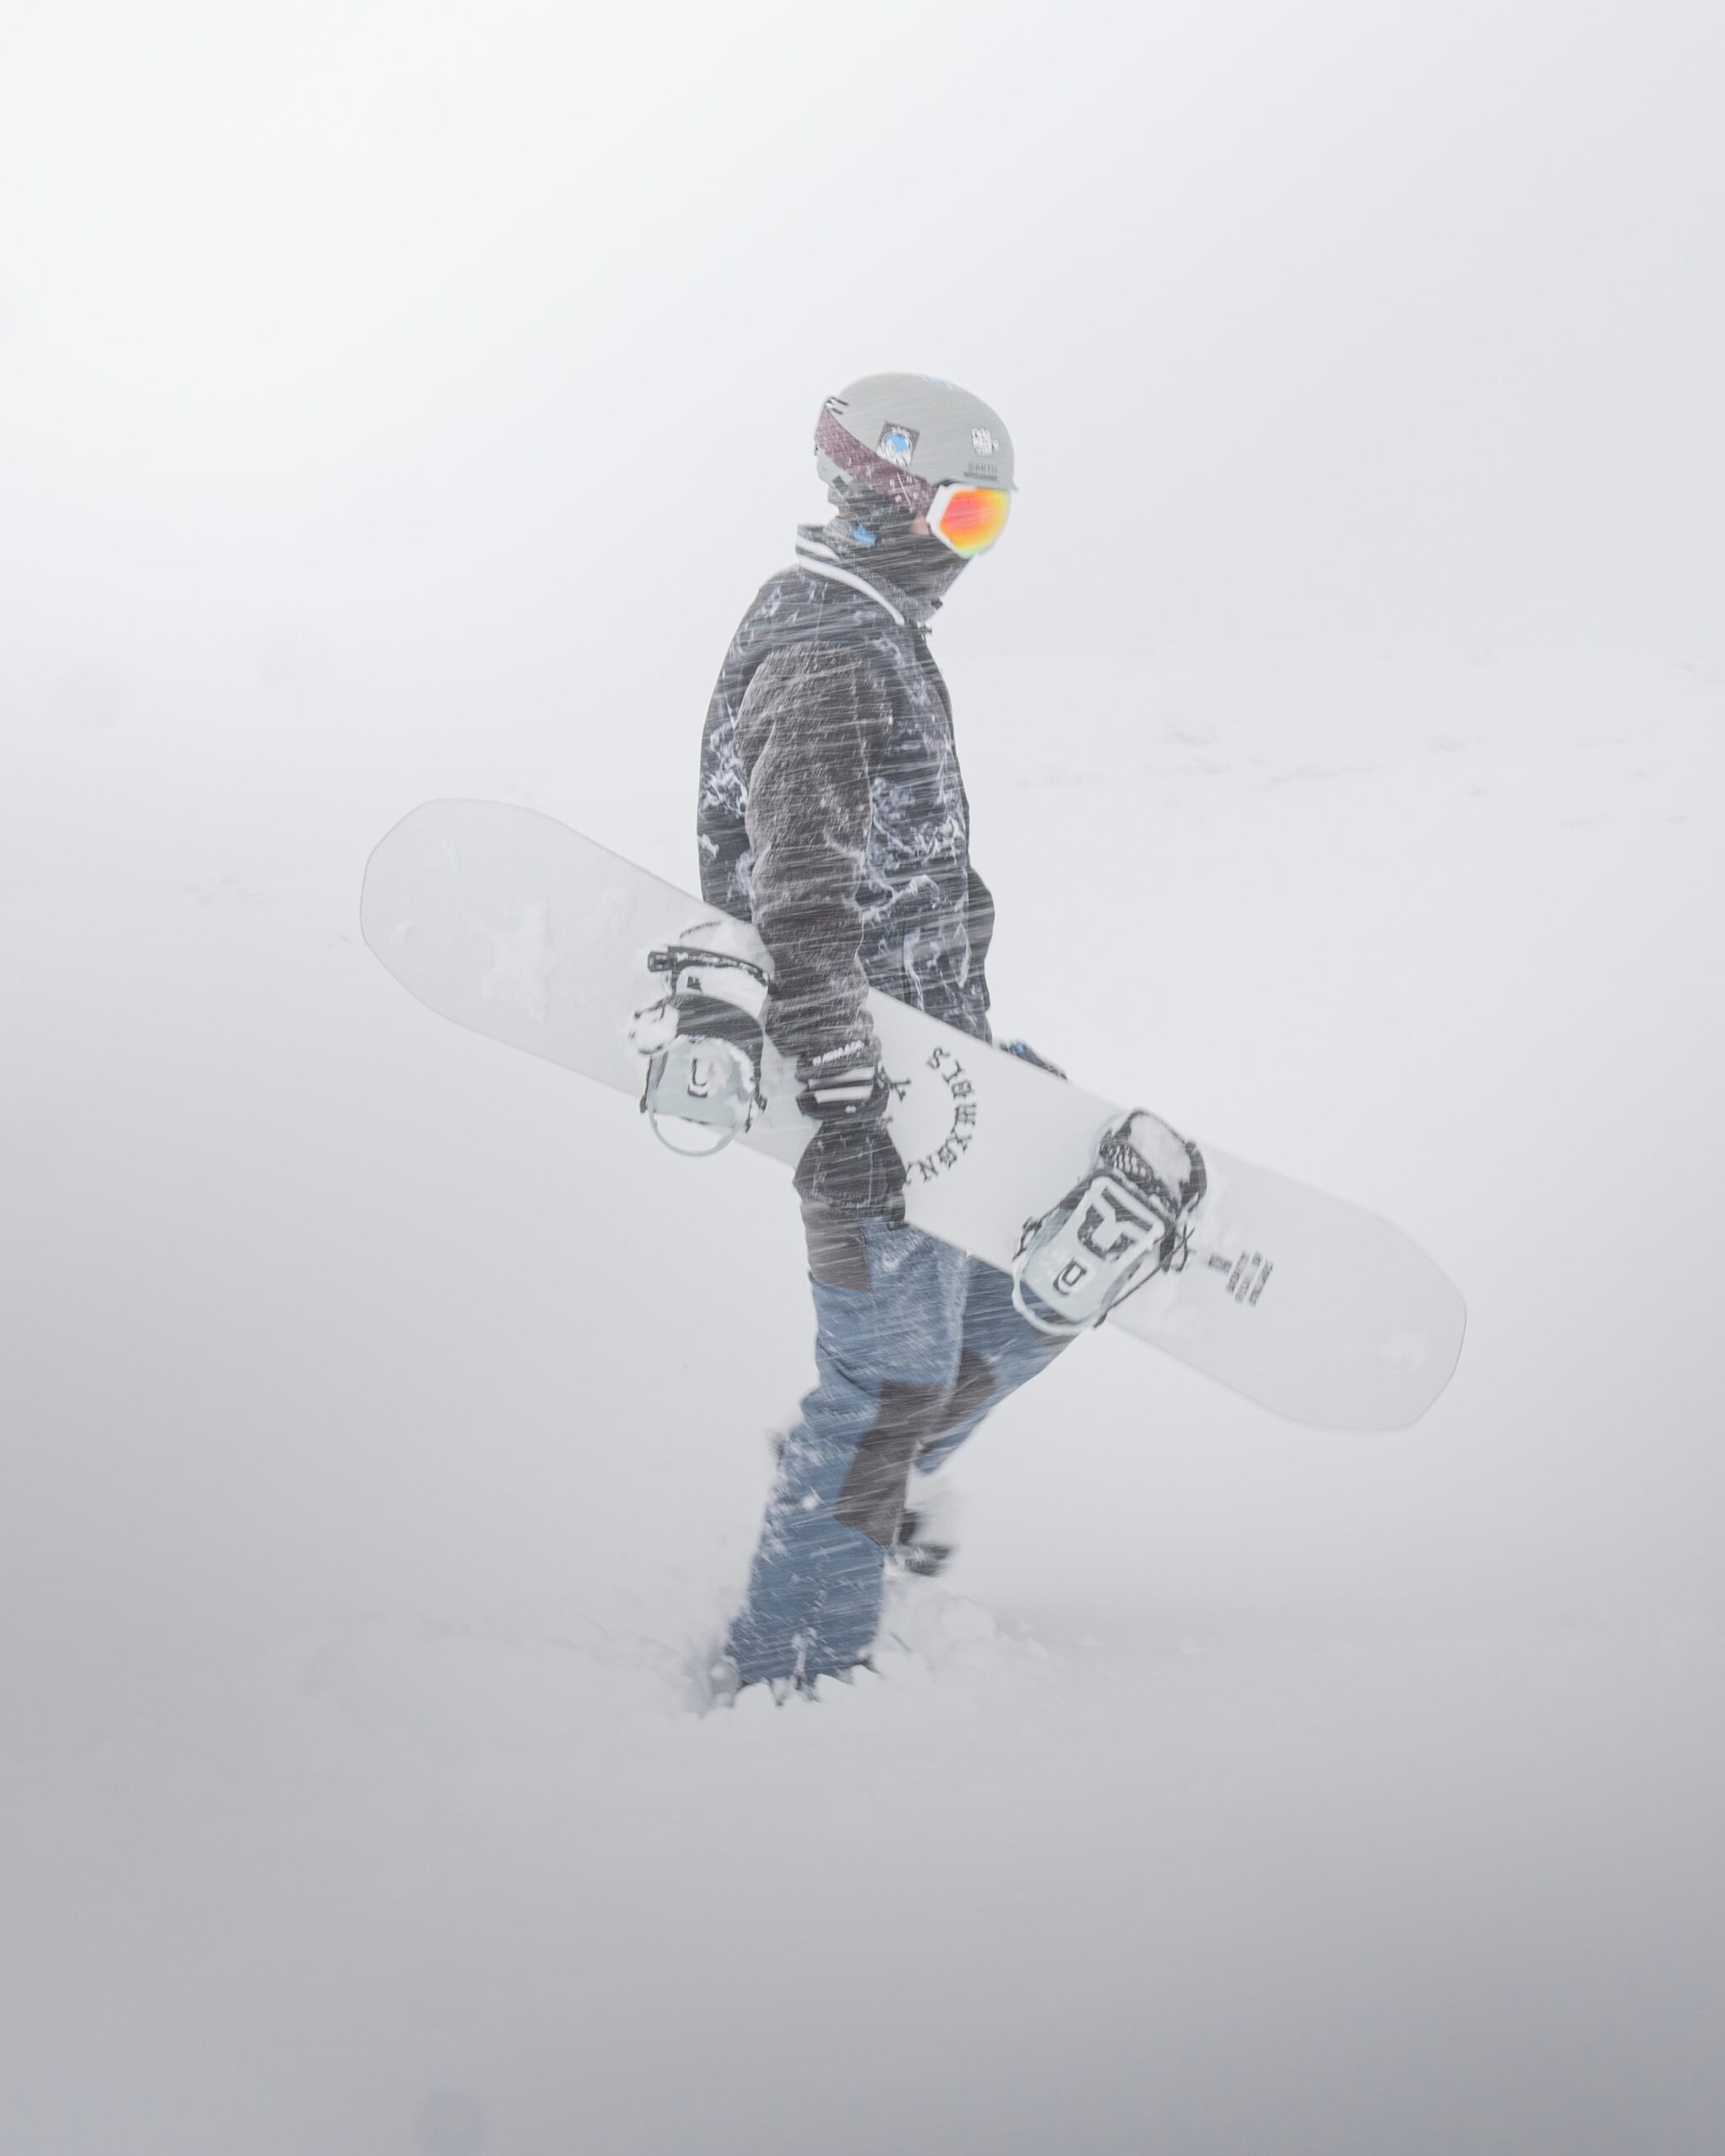 snowboarder snowboarding for the first time